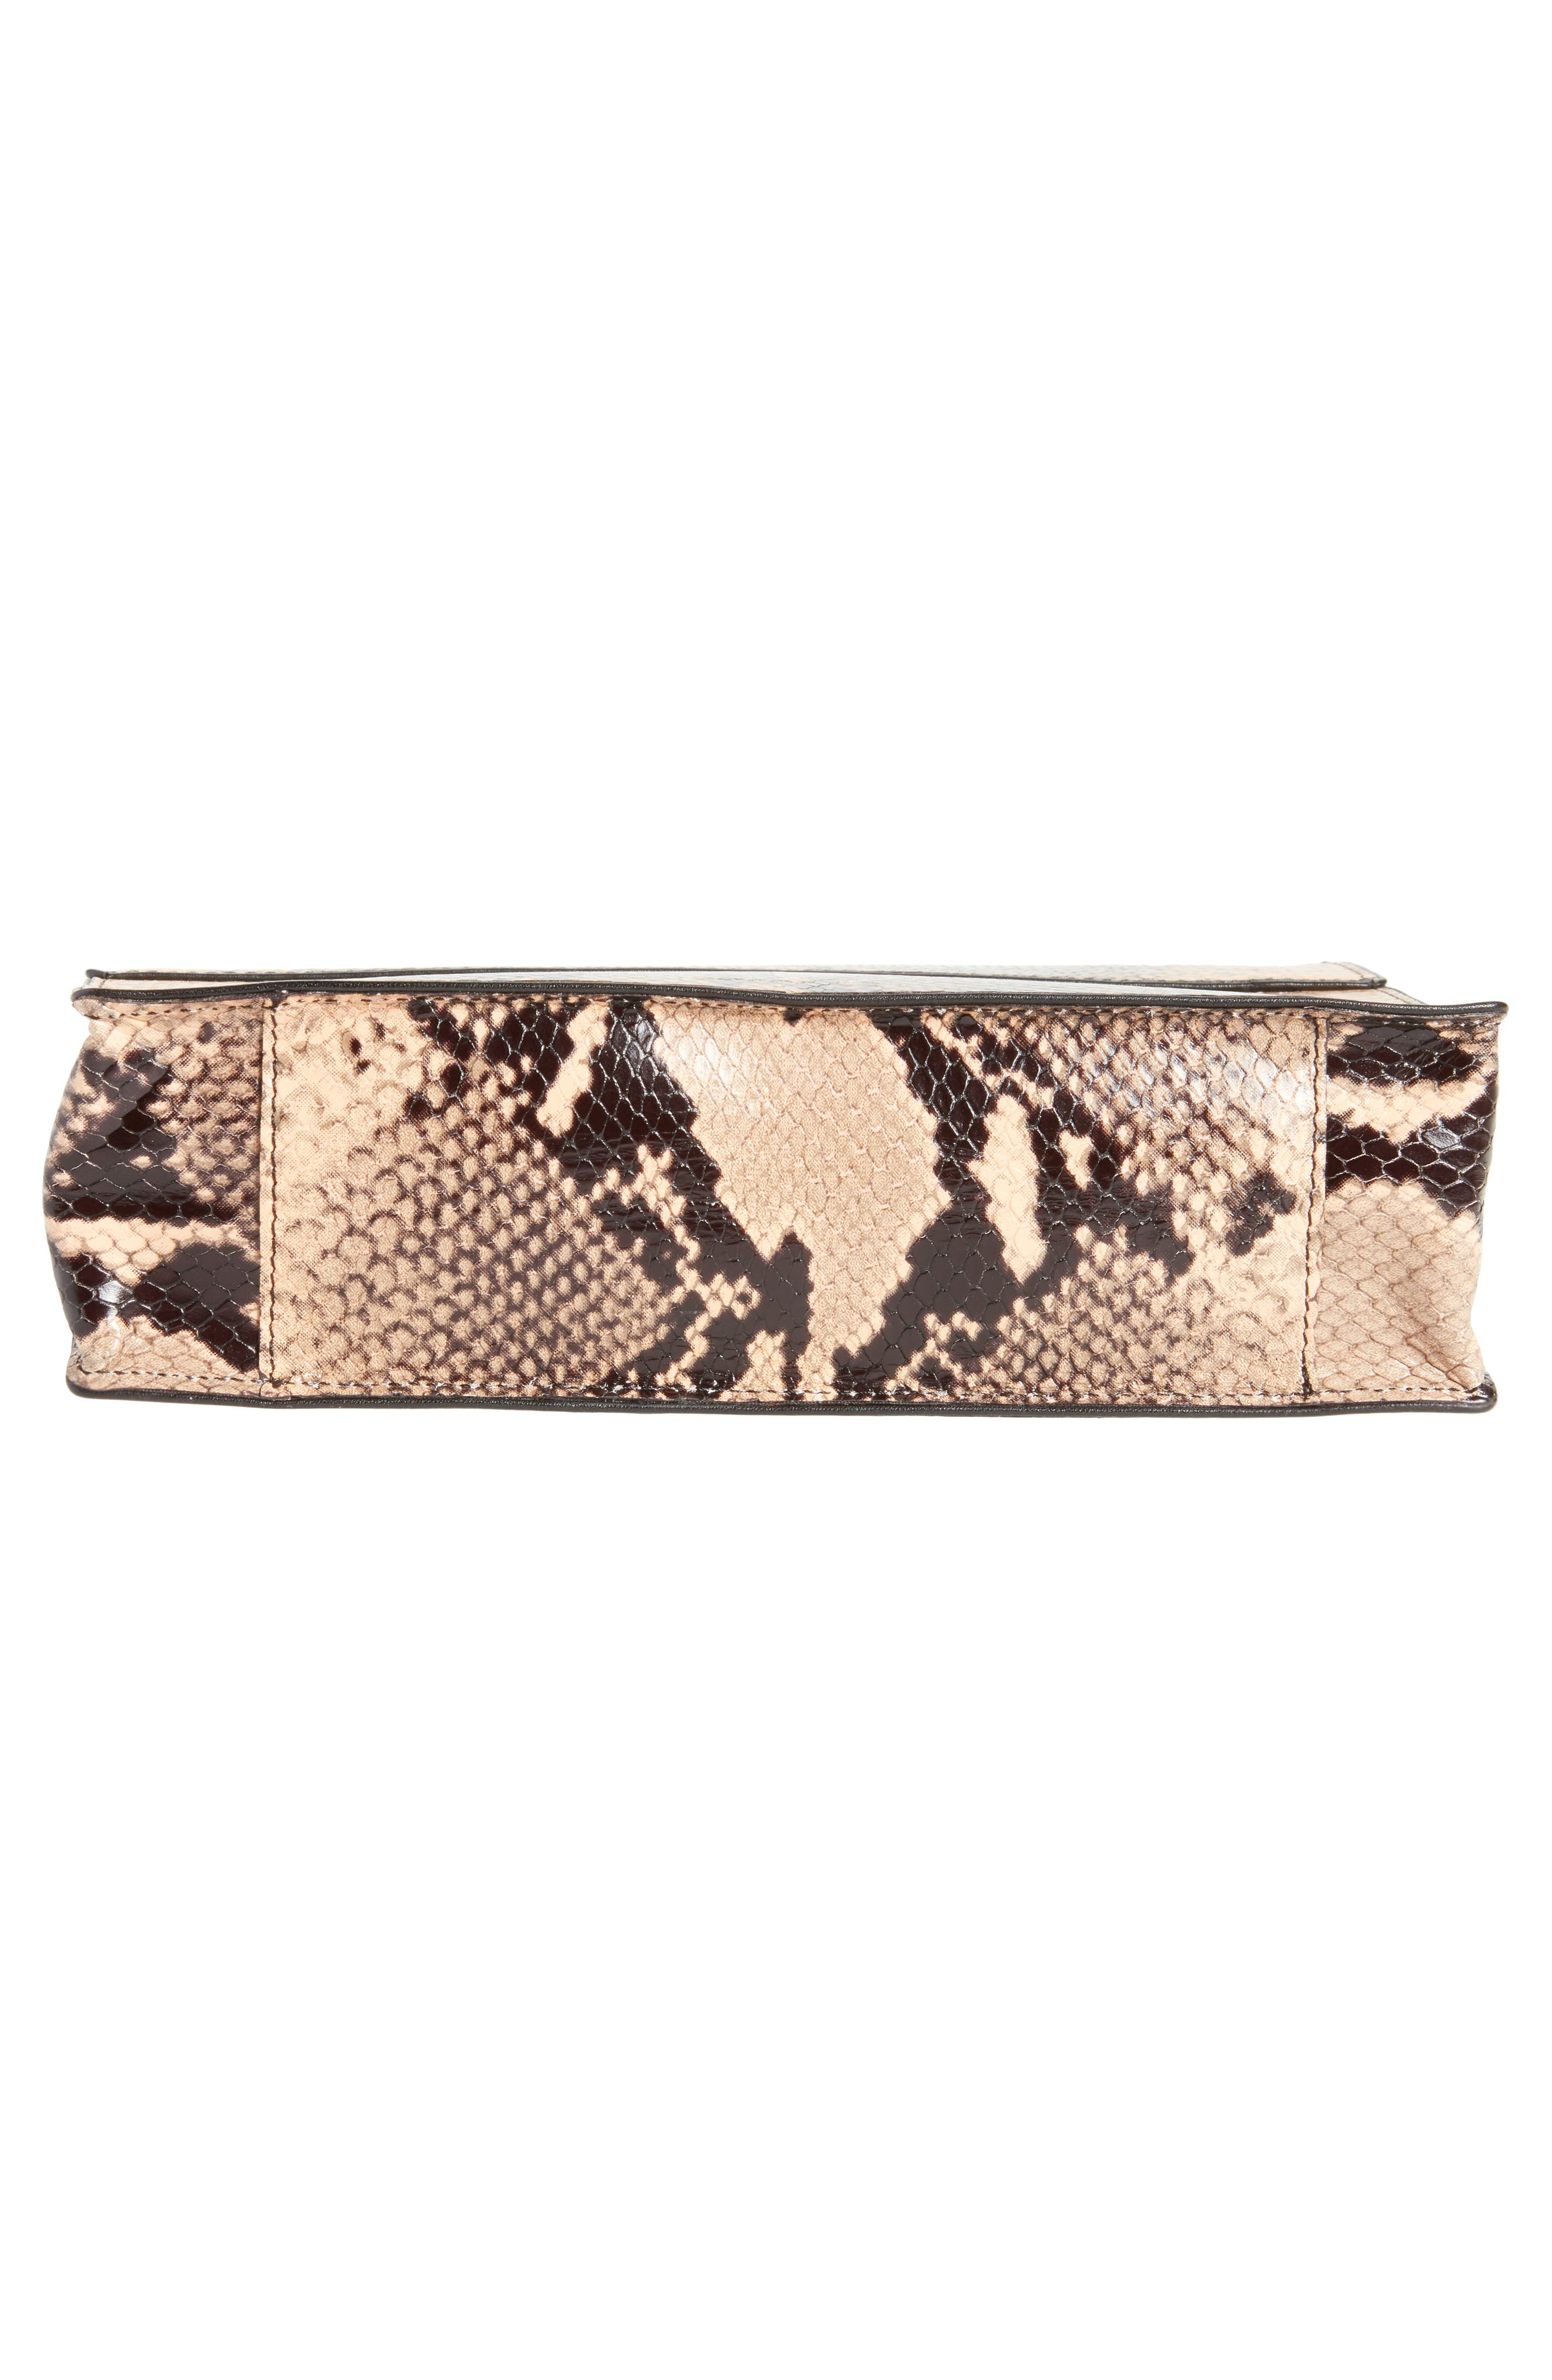 Snake Embossed Leather Wristlet Clutch,                             Alternate thumbnail 6, color,                             200